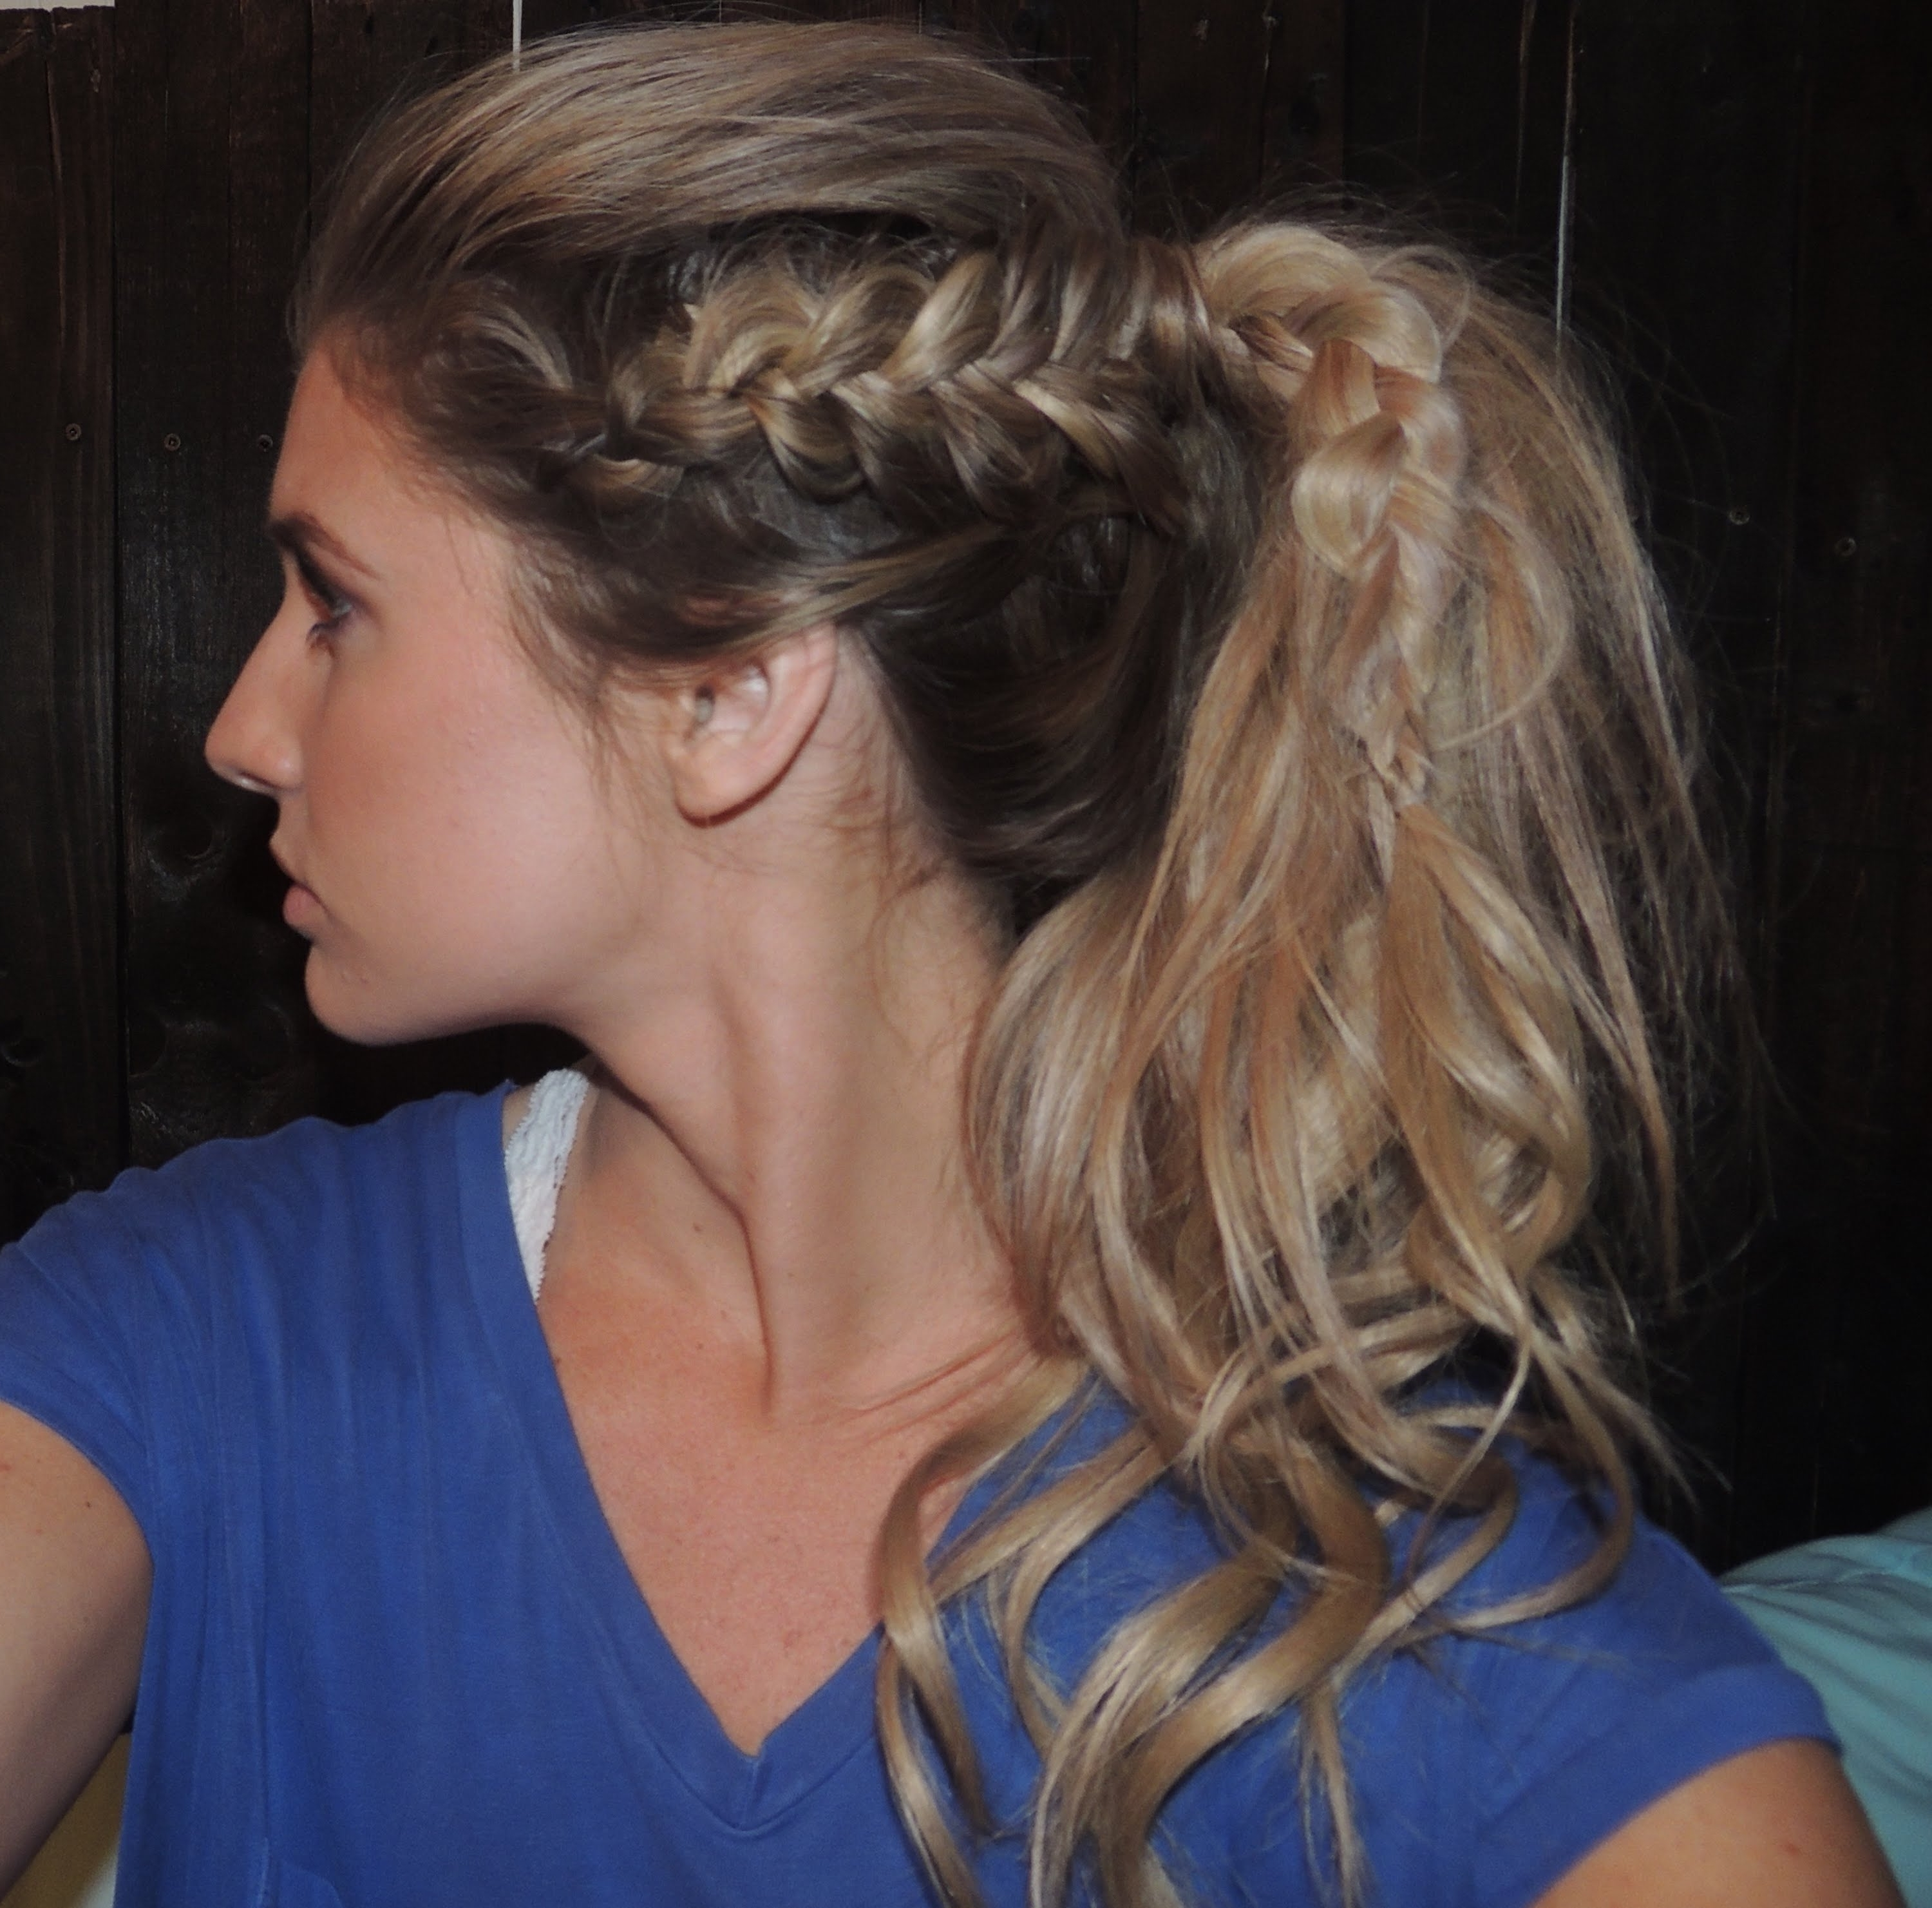 How To Tutorial On Side Dutch Braids To A Ponytail – Youtube Throughout Recent Dutch Braid Pony Hairstyles (View 10 of 20)